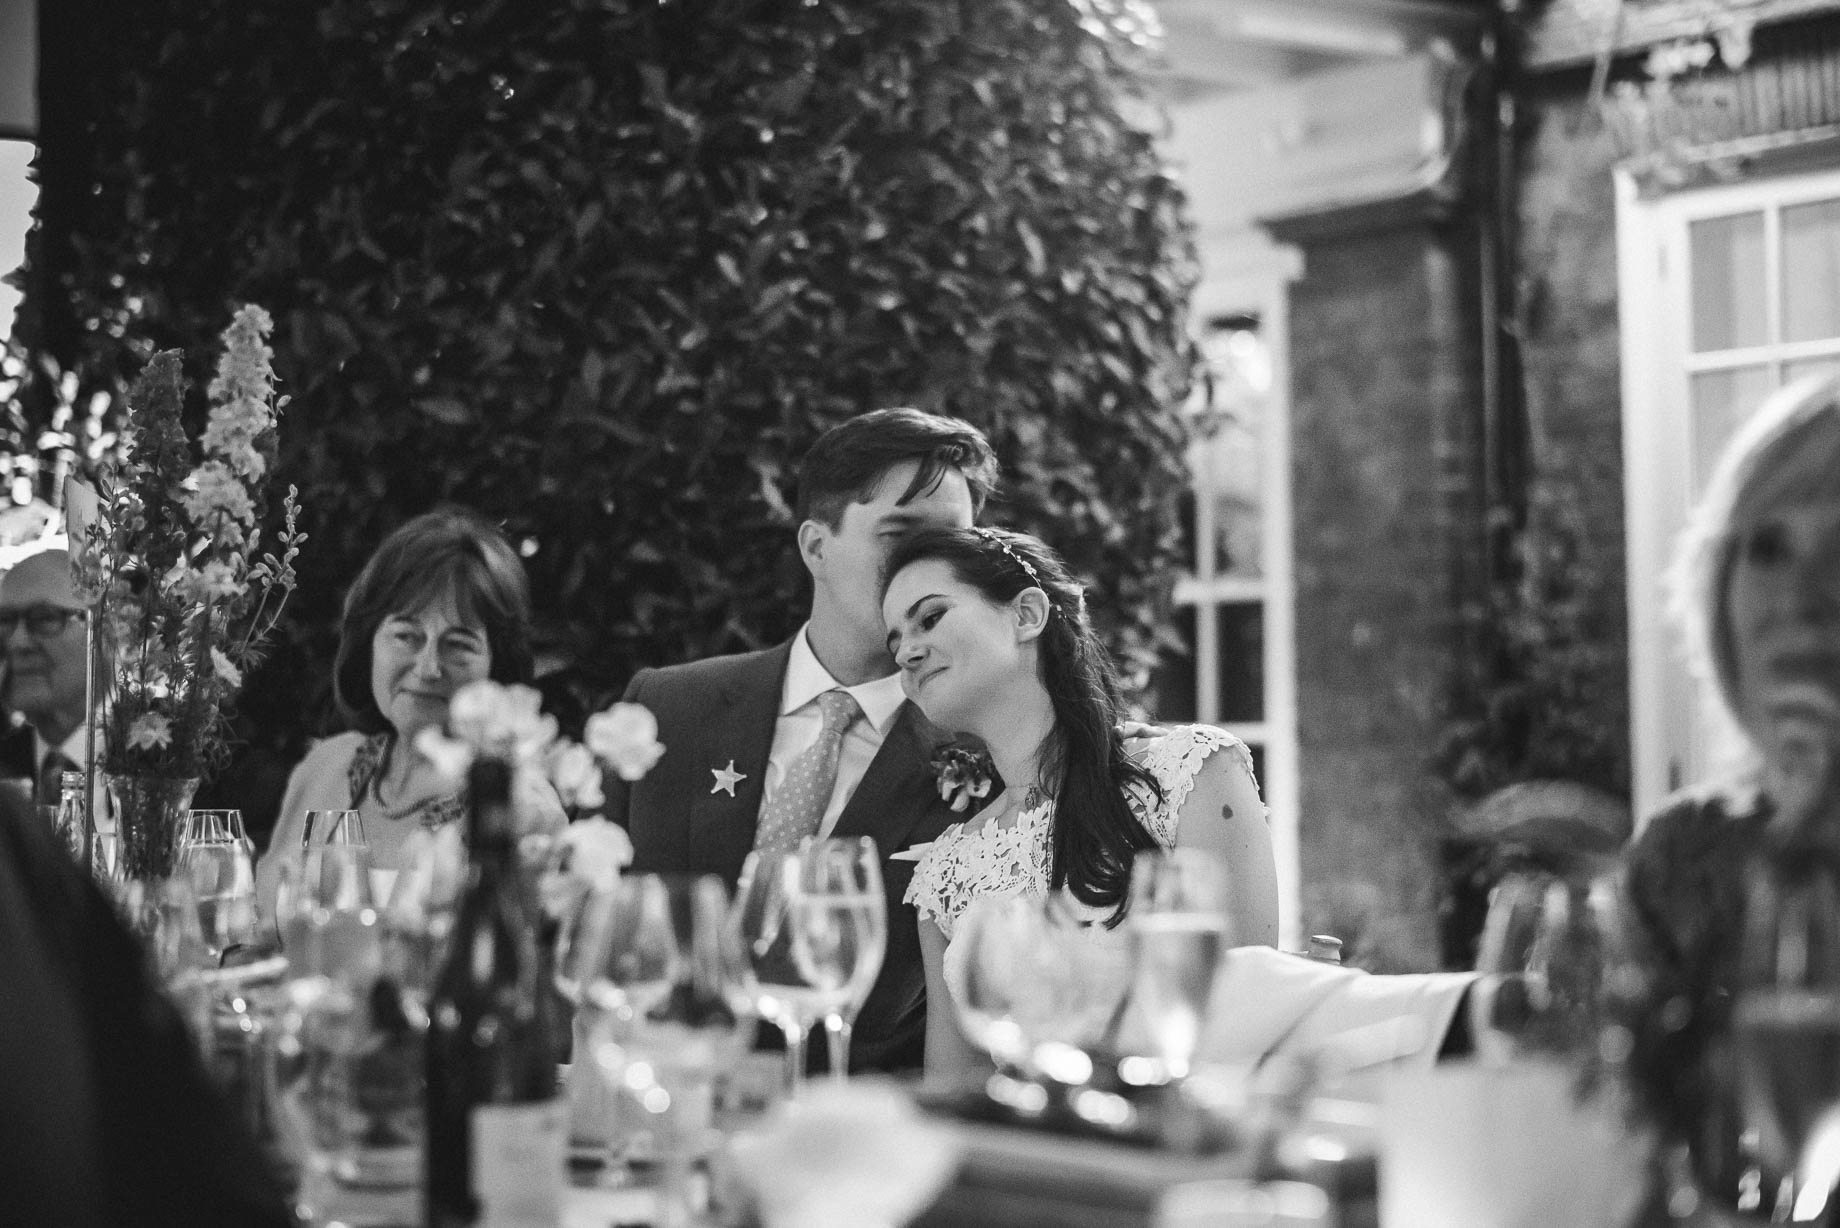 London wedding photography - Claire and JW - Guy Collier Photography (124 of 153)